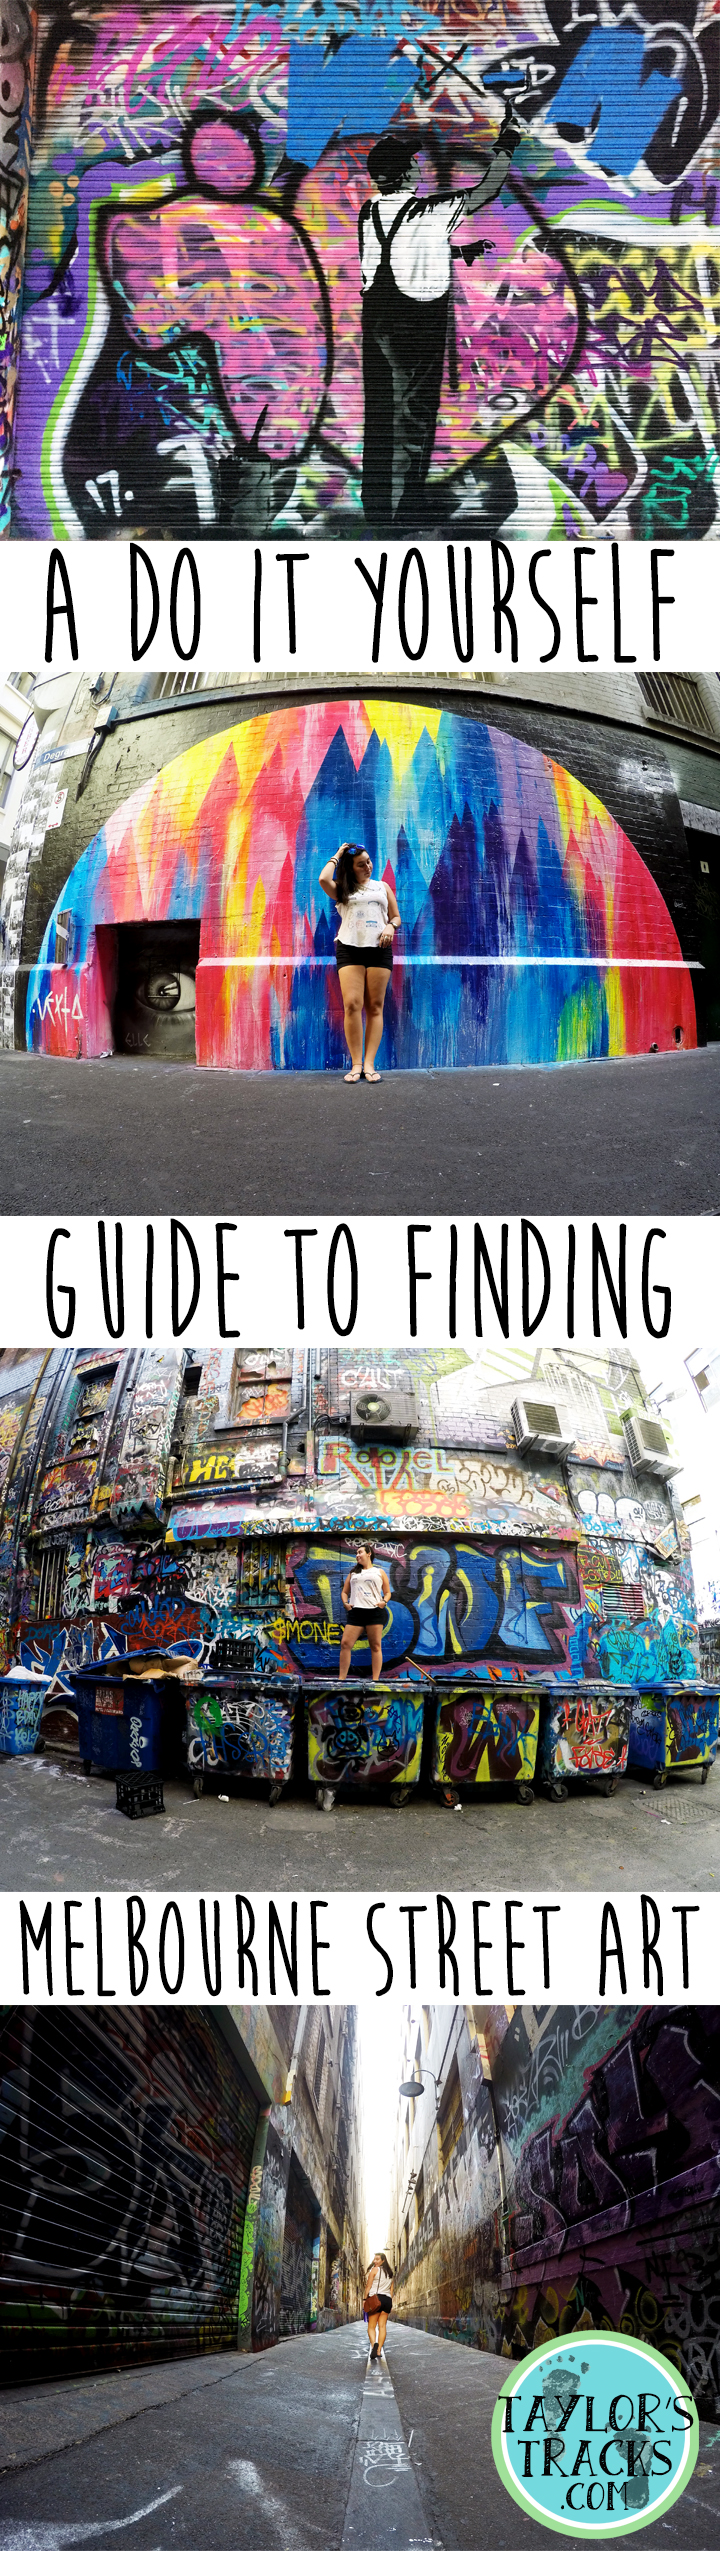 A do it yourself guide to finding melbourne street art a do it yourself guide to finding melbourne street art taylorstracks solutioingenieria Choice Image